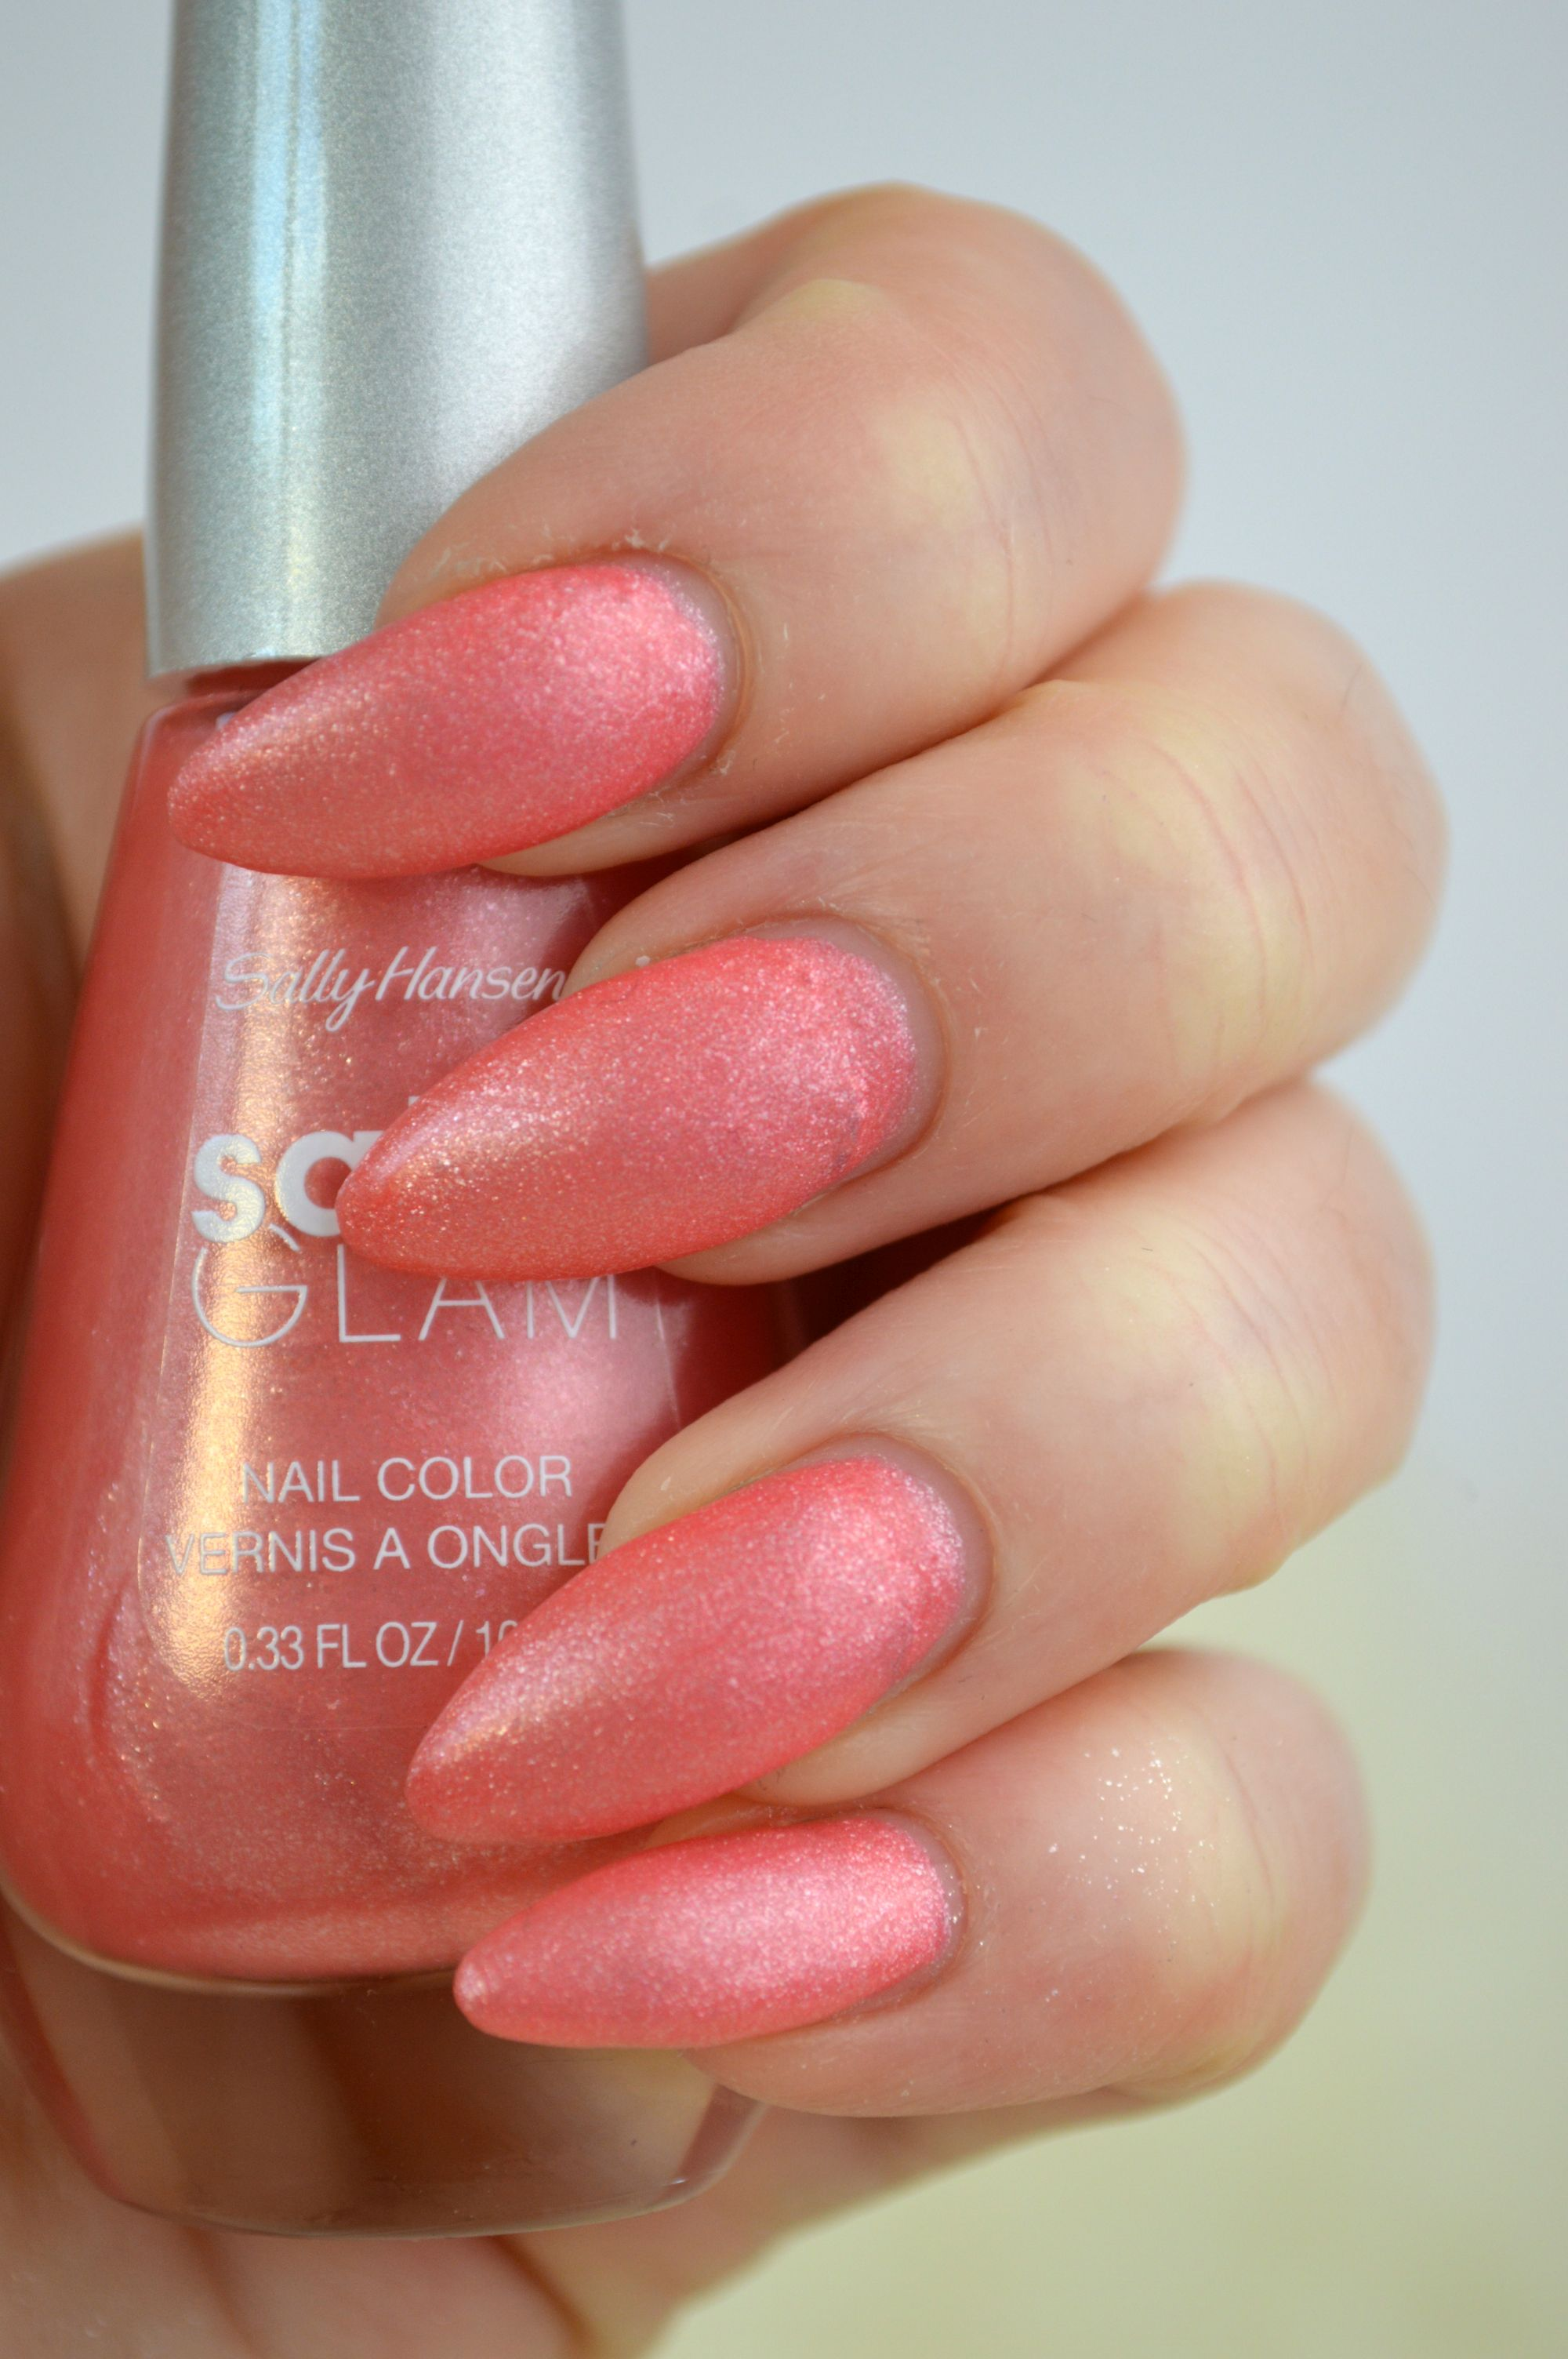 Sally_Hansen_Satin_Glam_Chic_Pink_Swatches